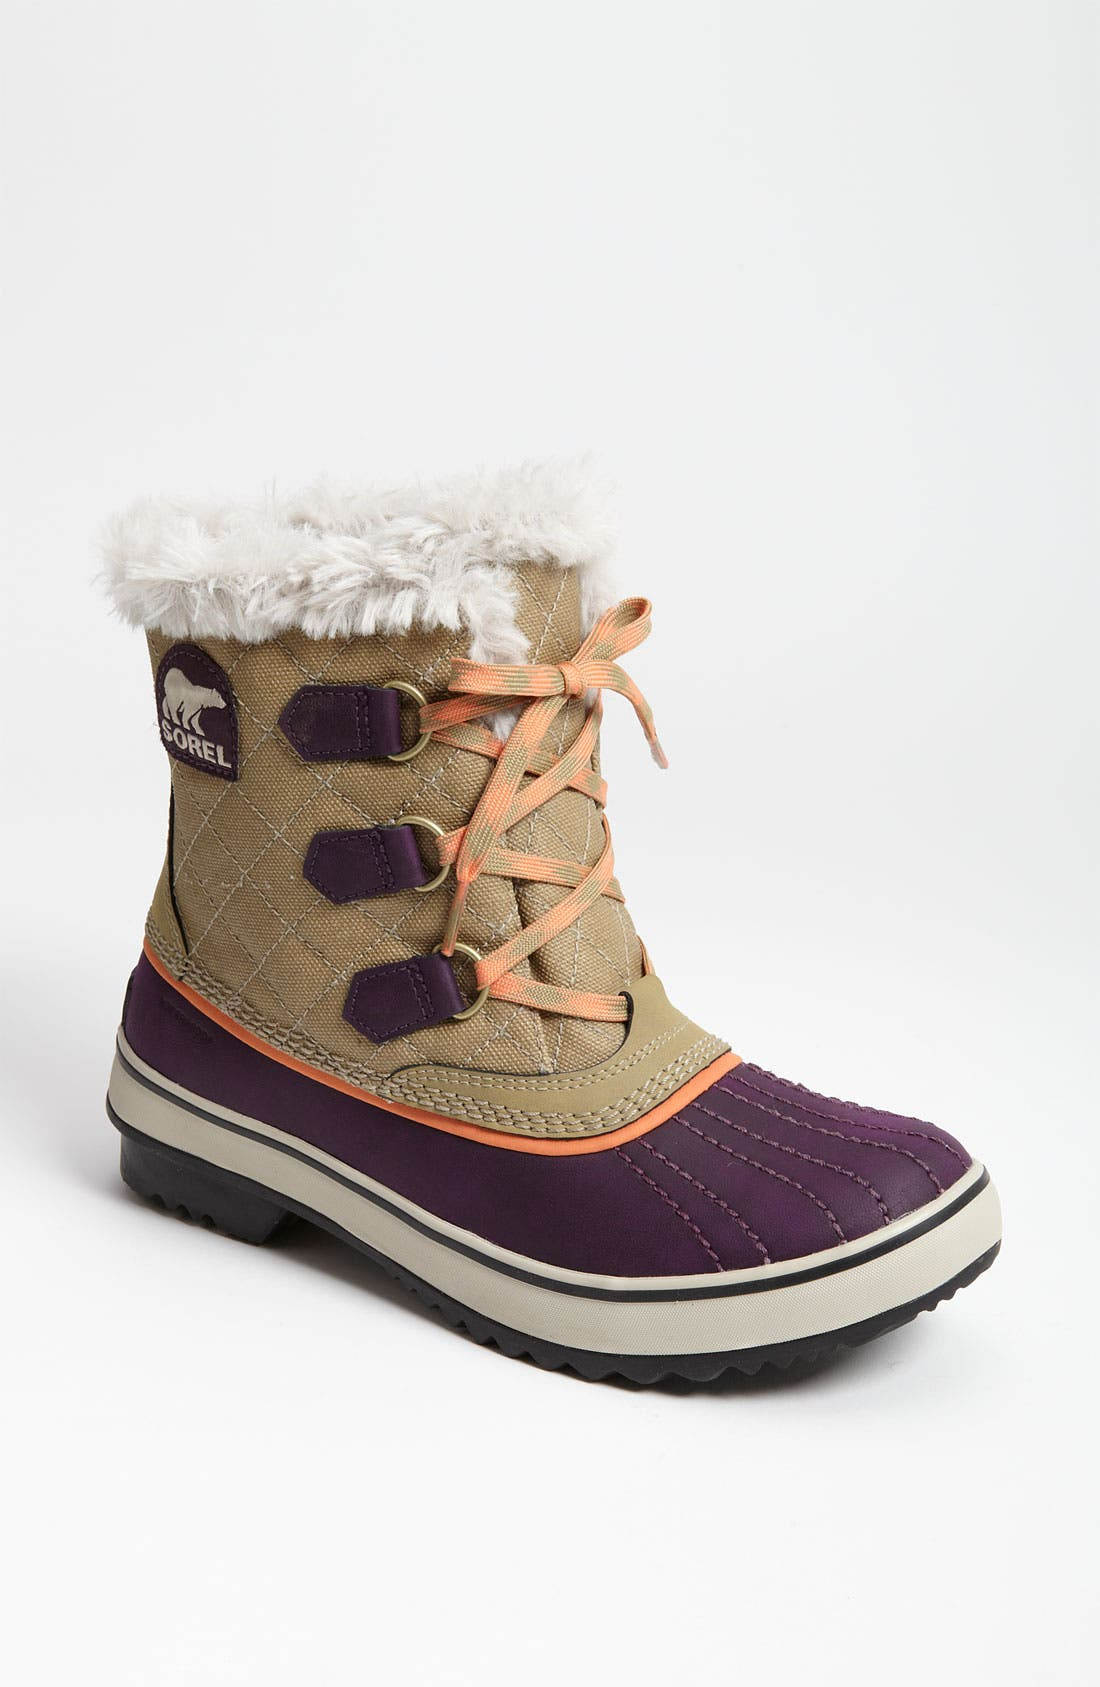 Main Image - SOREL 'Tivoli' Waterproof Boot